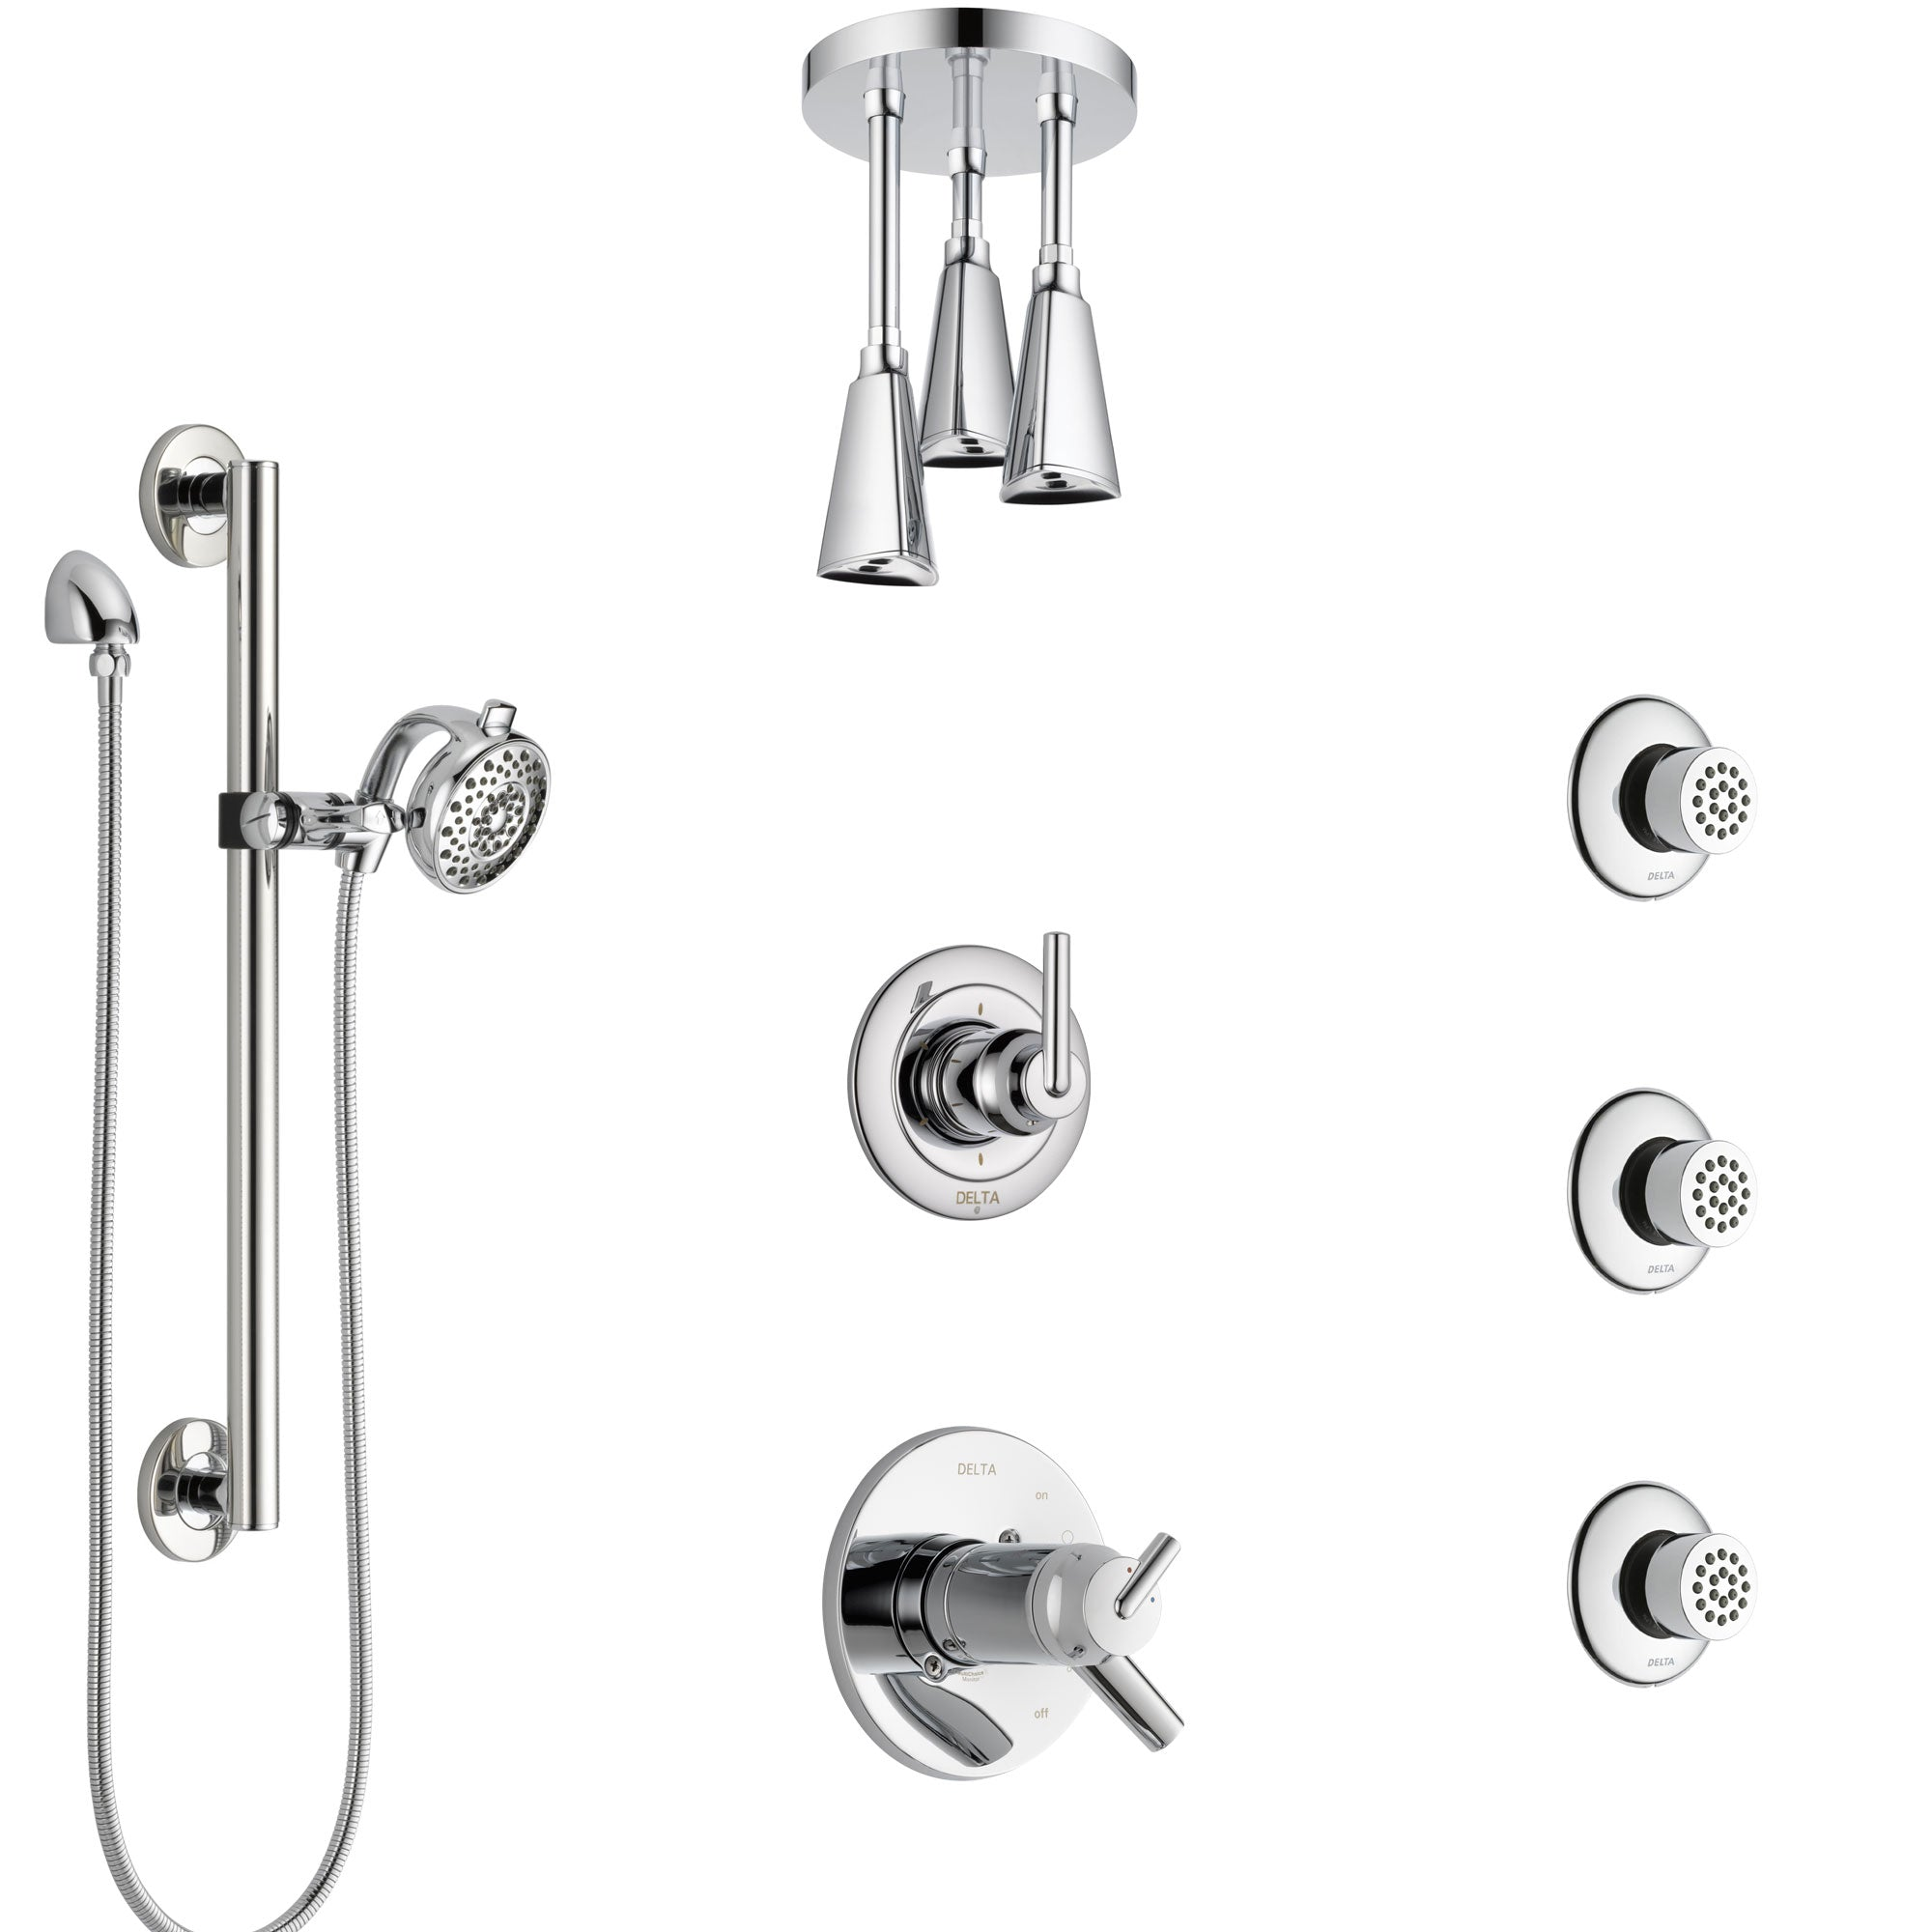 Delta Trinsic Chrome Shower System with Dual Thermostatic Control, Diverter, Ceiling Showerhead, 3 Body Sprays, and Grab Bar Hand Shower SS17T5918